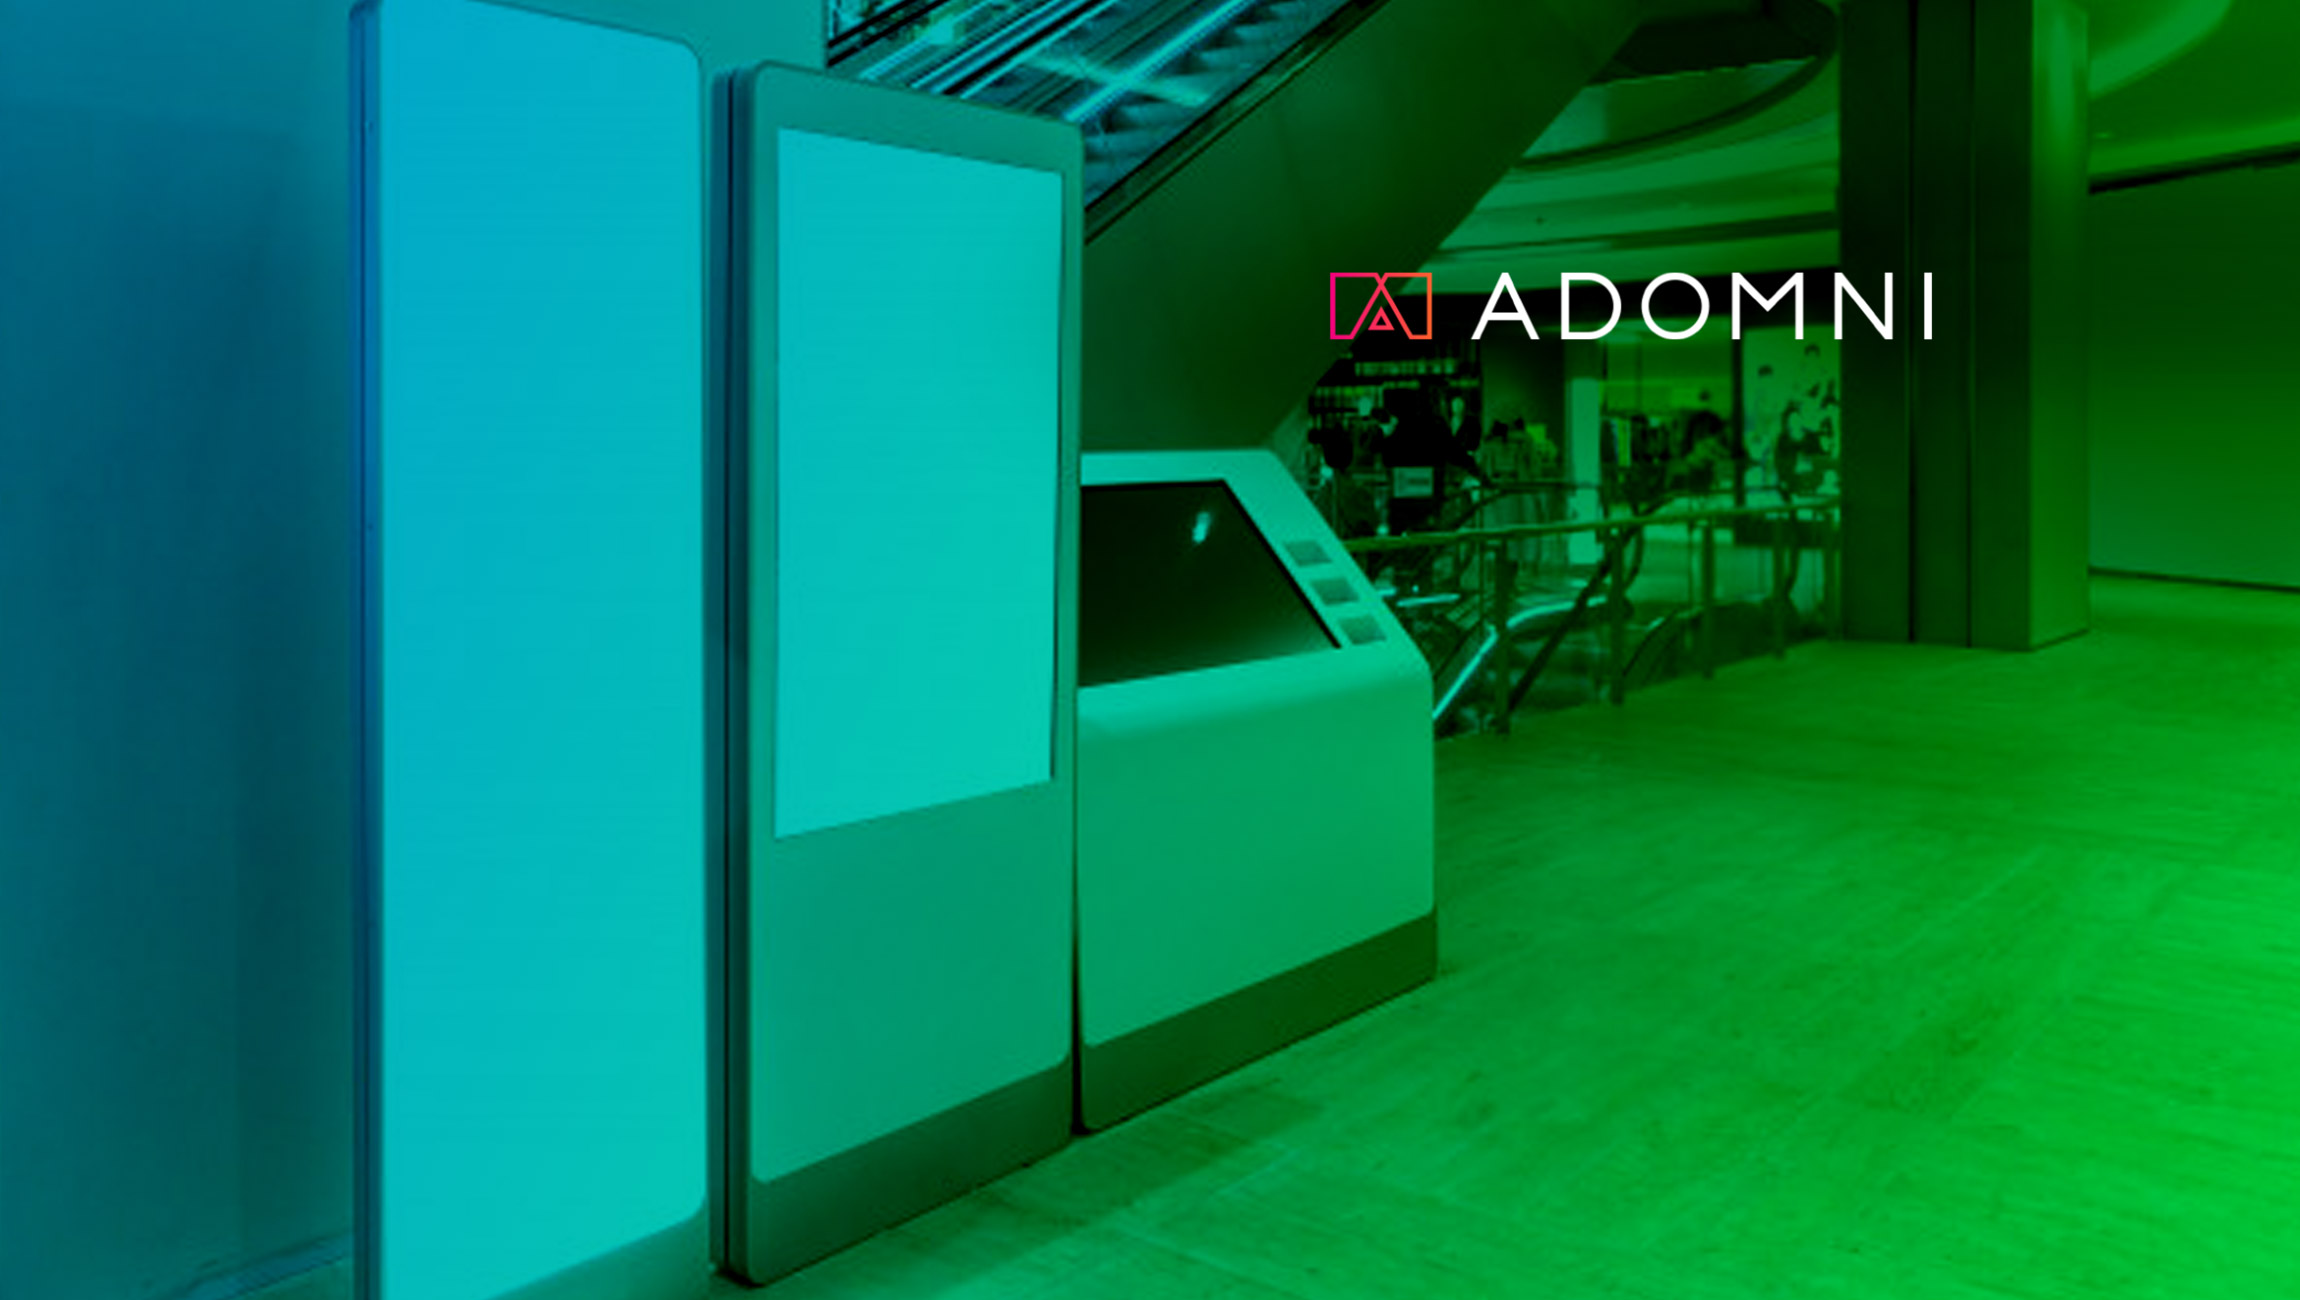 Adomni and Lightbox OOH Video Network Partner to Drive New Programmatic Revenue for Shopping Mall Screens